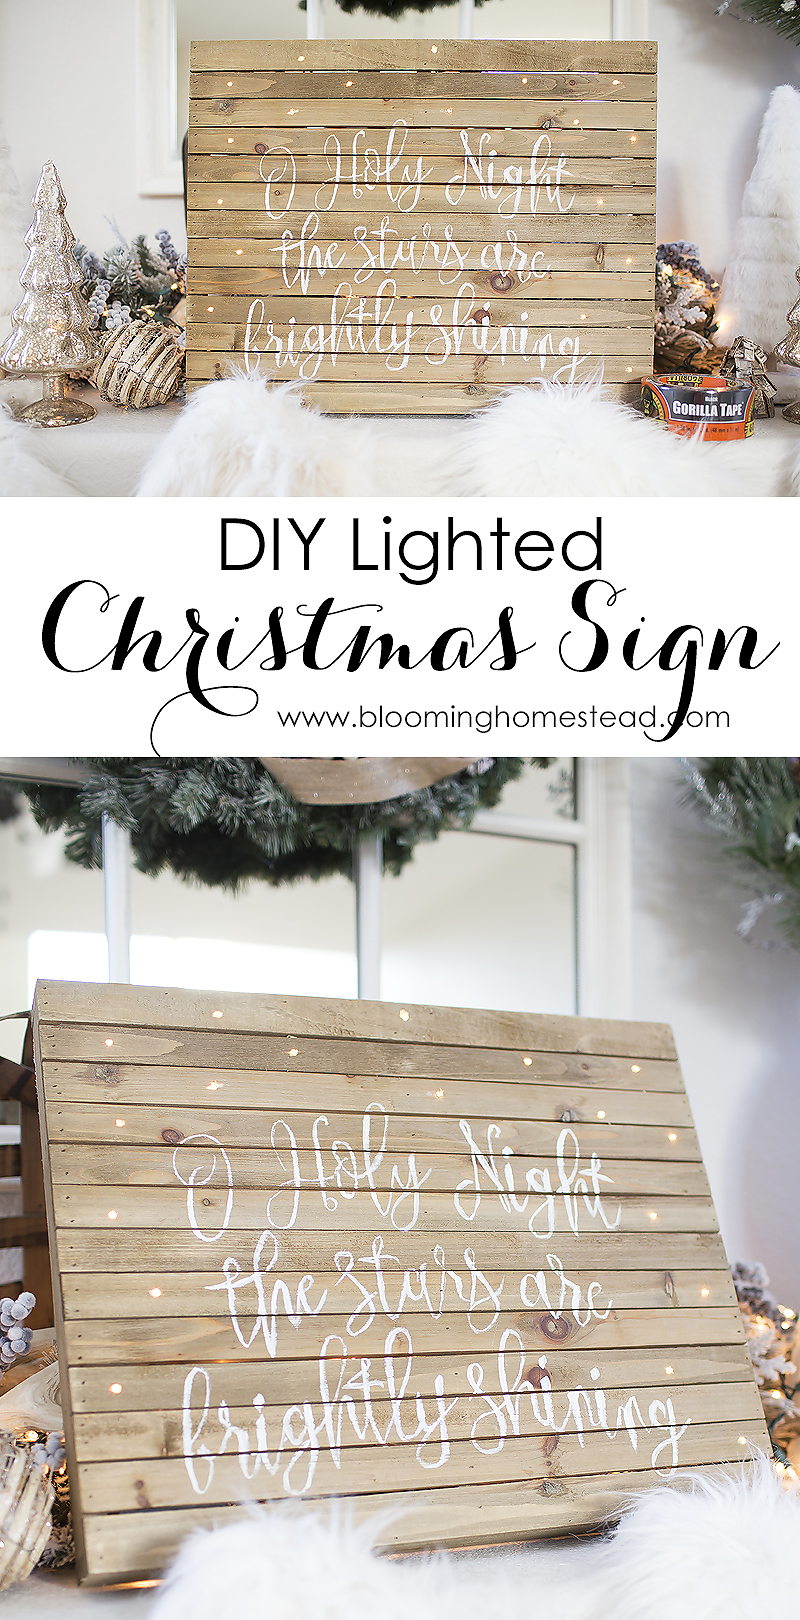 This diy lighted Christmas Sign is easy to make and looks great. Create your own by following this tutorial.